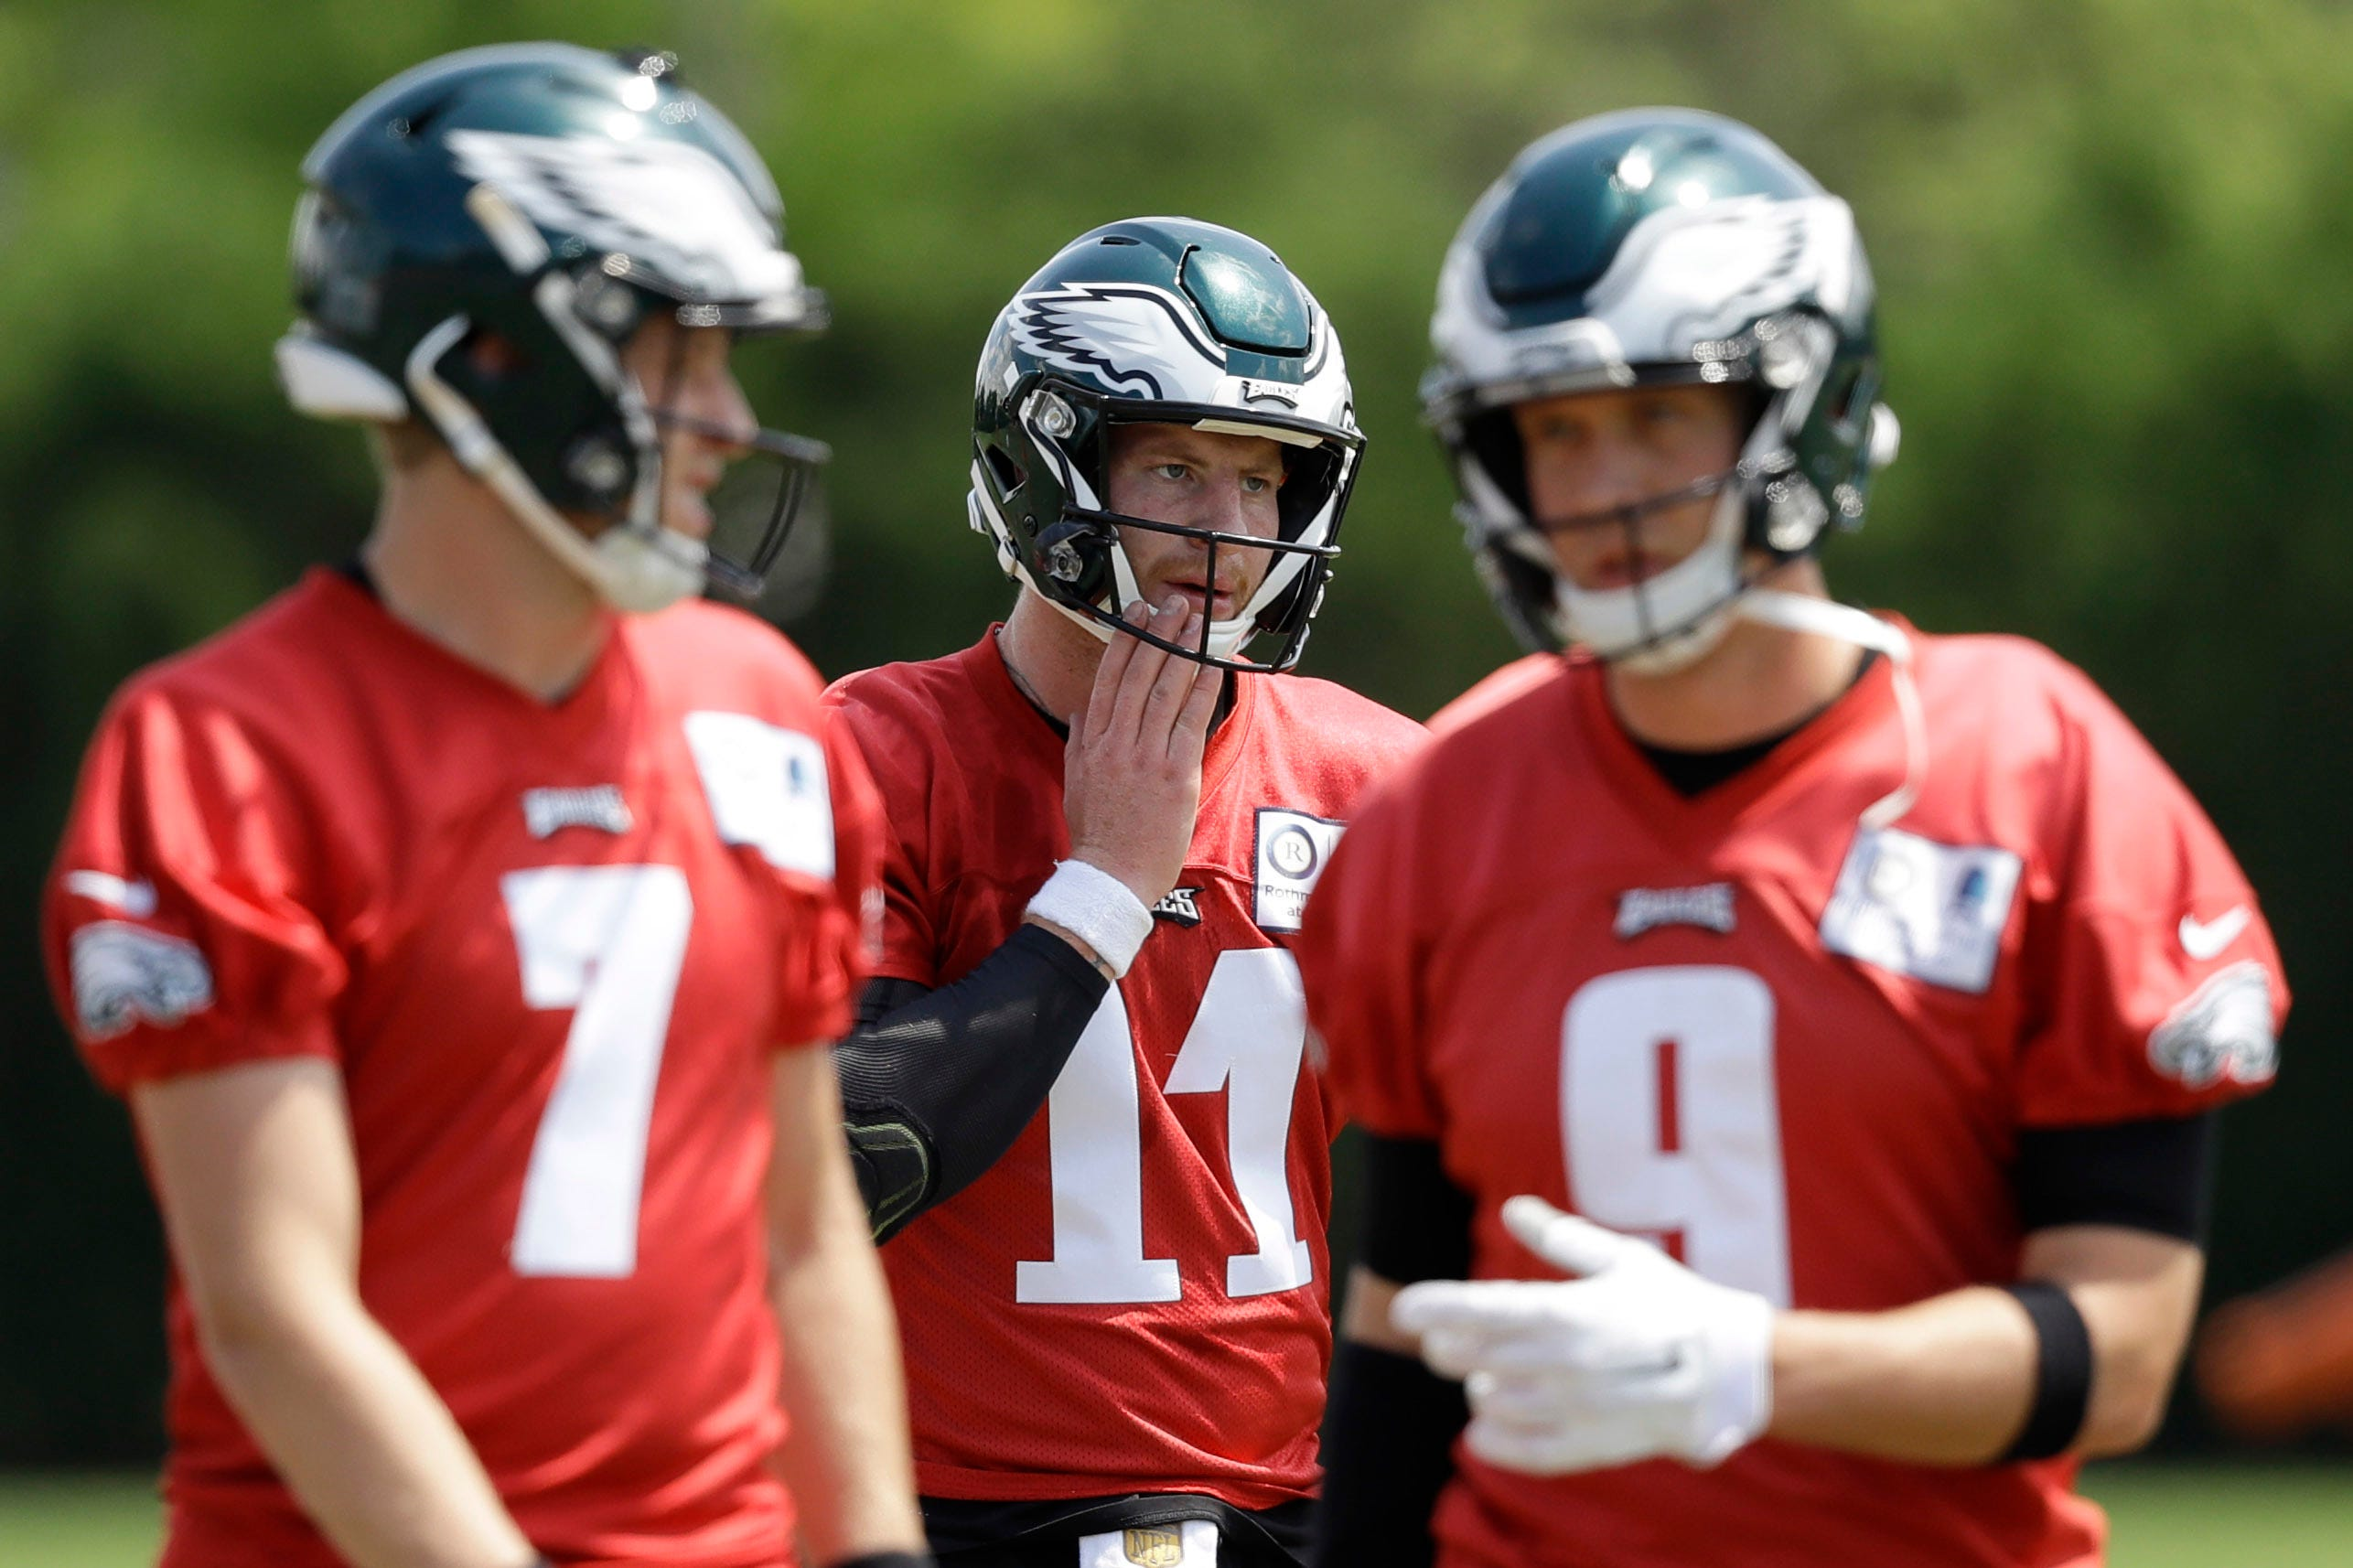 Doug Pederson: Nick Foles would start at QB over Carson Wentz if Eagles' season started now